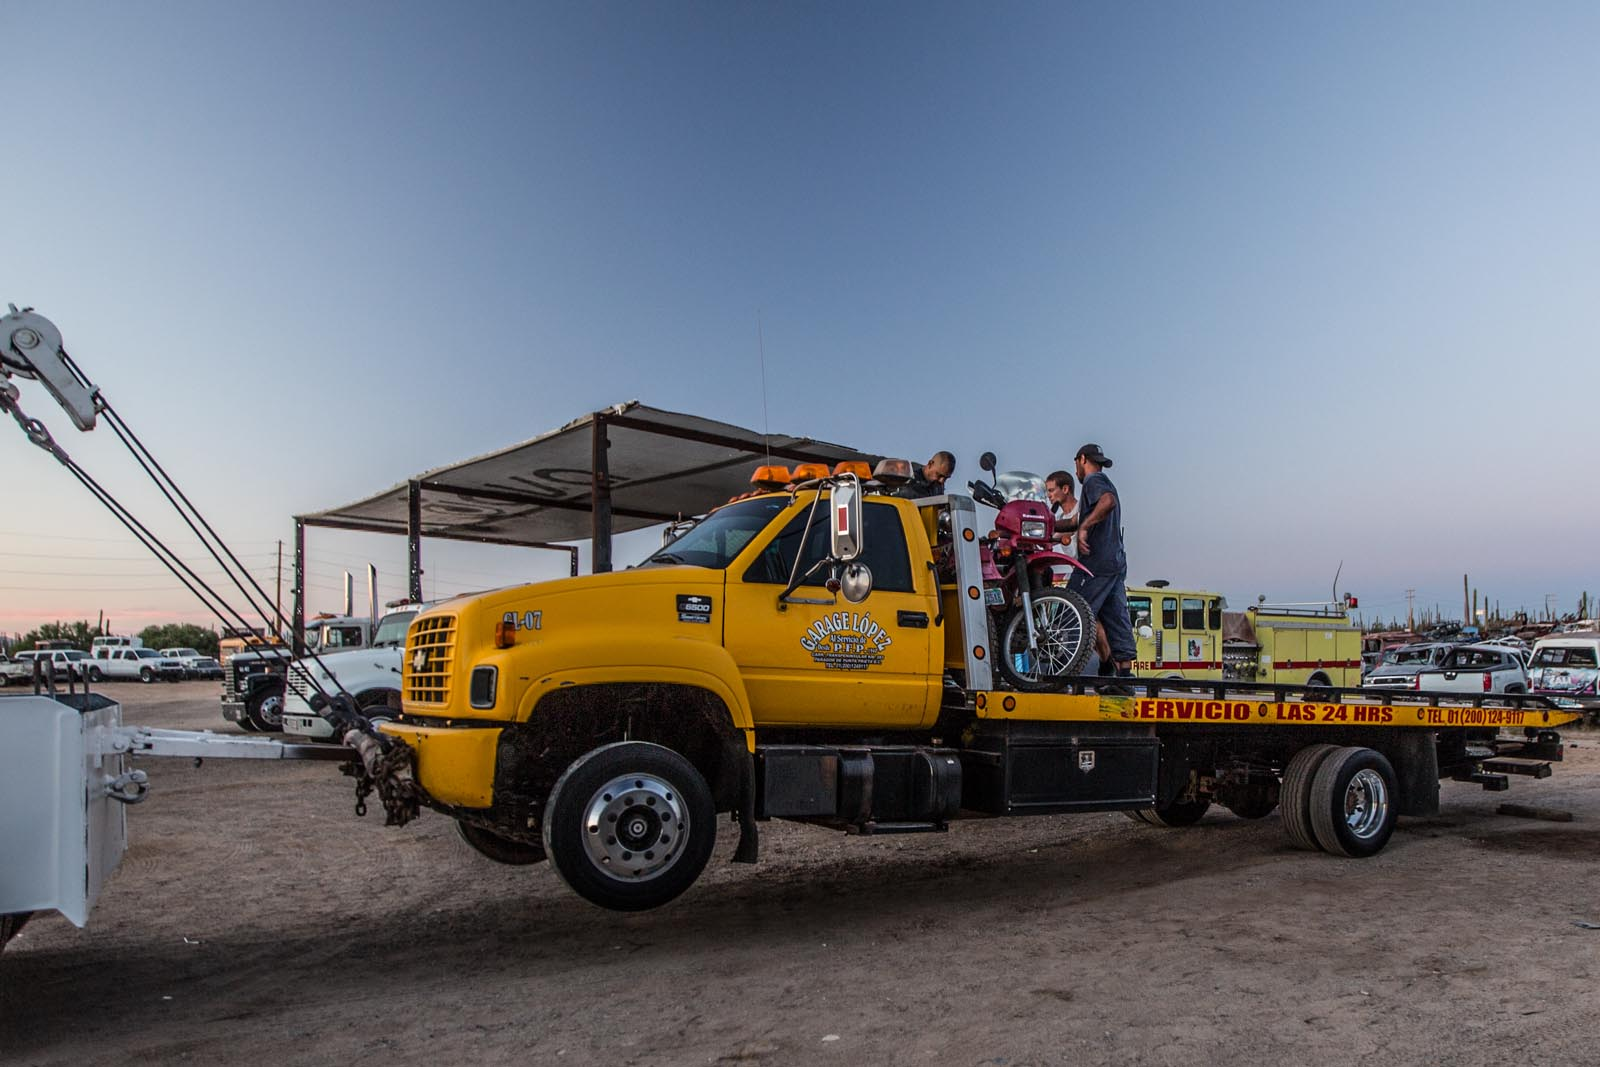 This is a tow truck, towing a tow truck, which is now towing our bikes as well. Somehow, the guys at the garage just happened to be driving down to La Paz at 4 am the next day. Take us please!